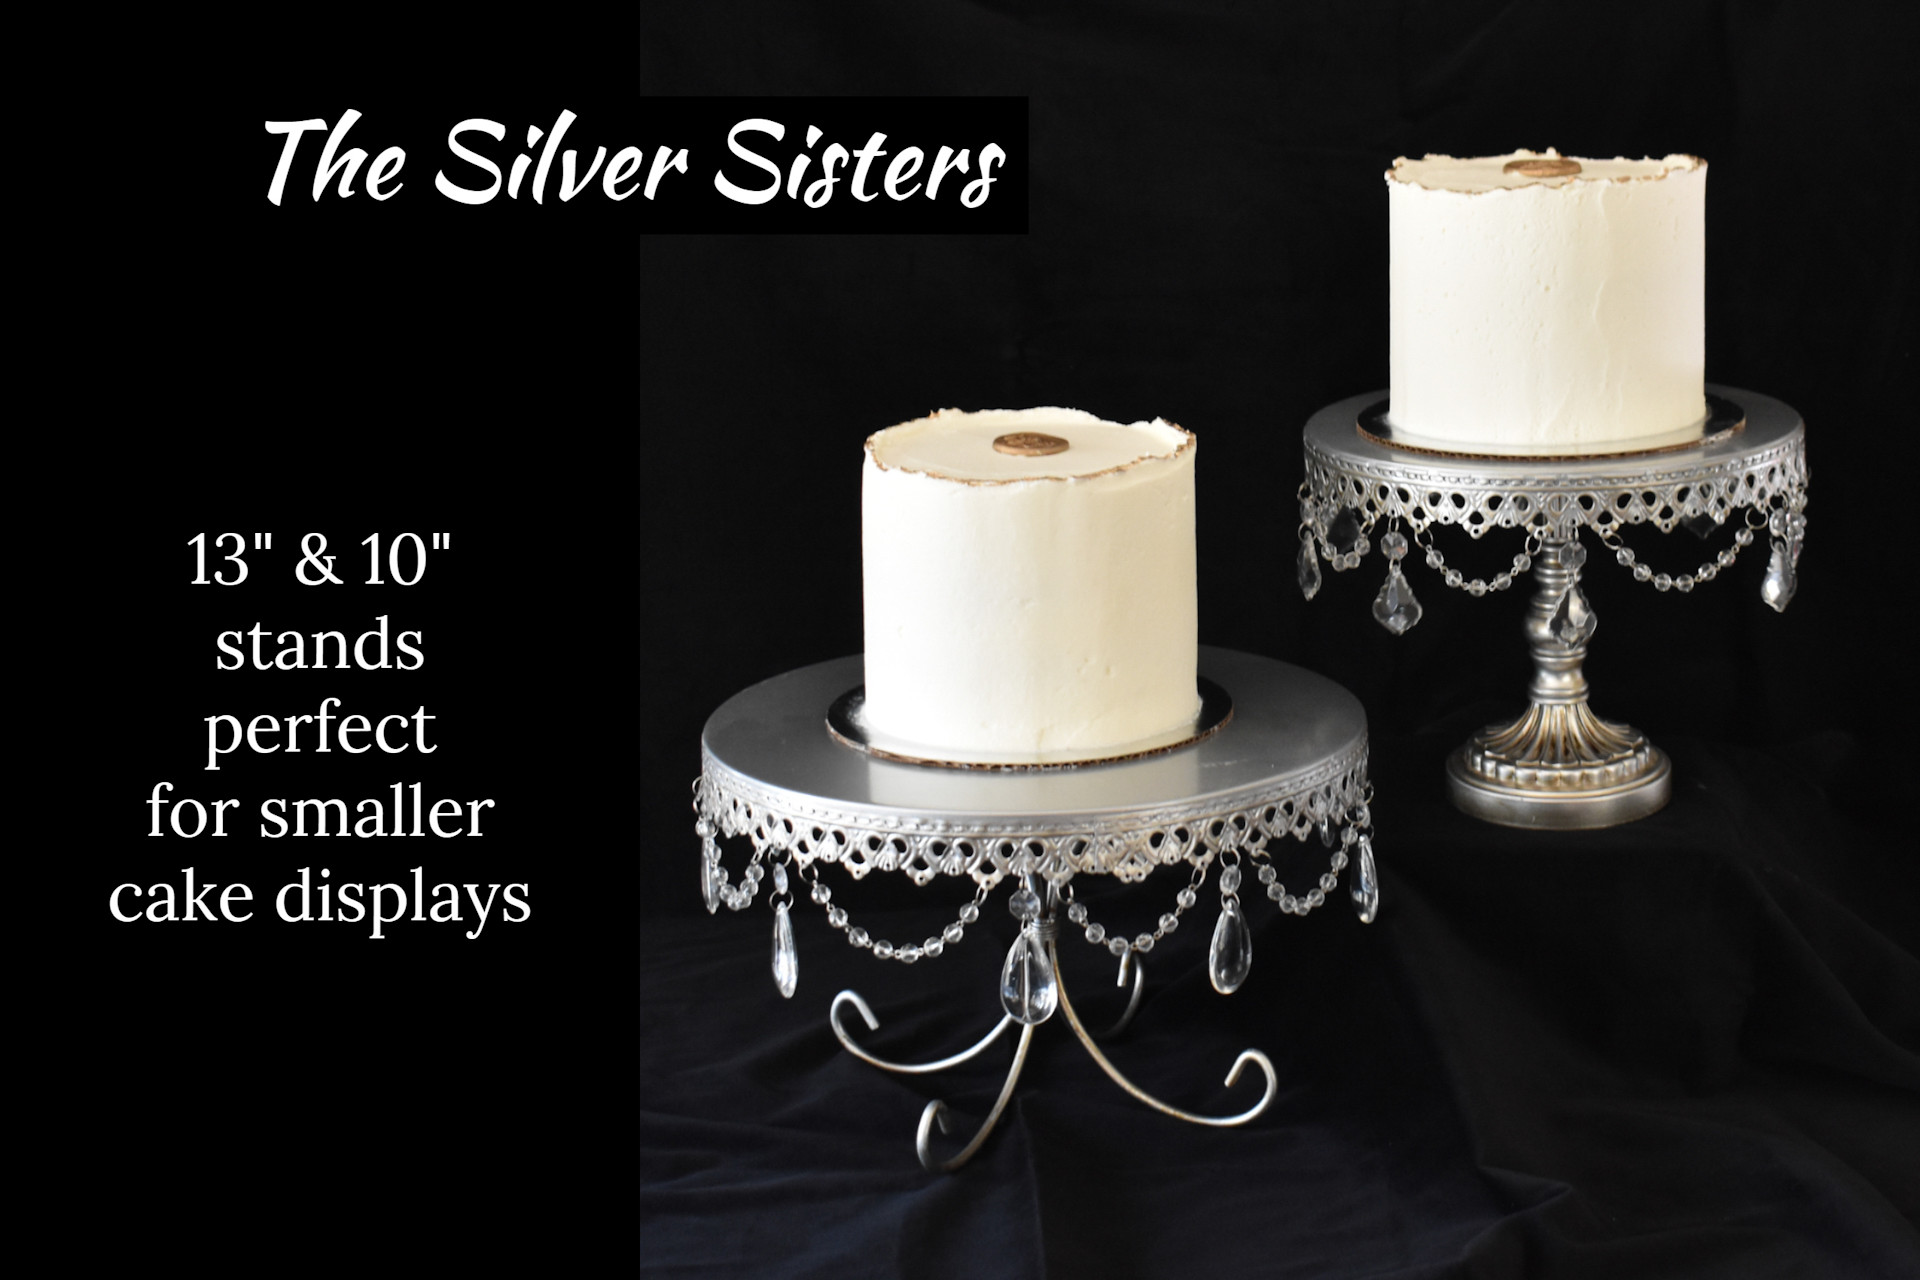 The Silver Sisters